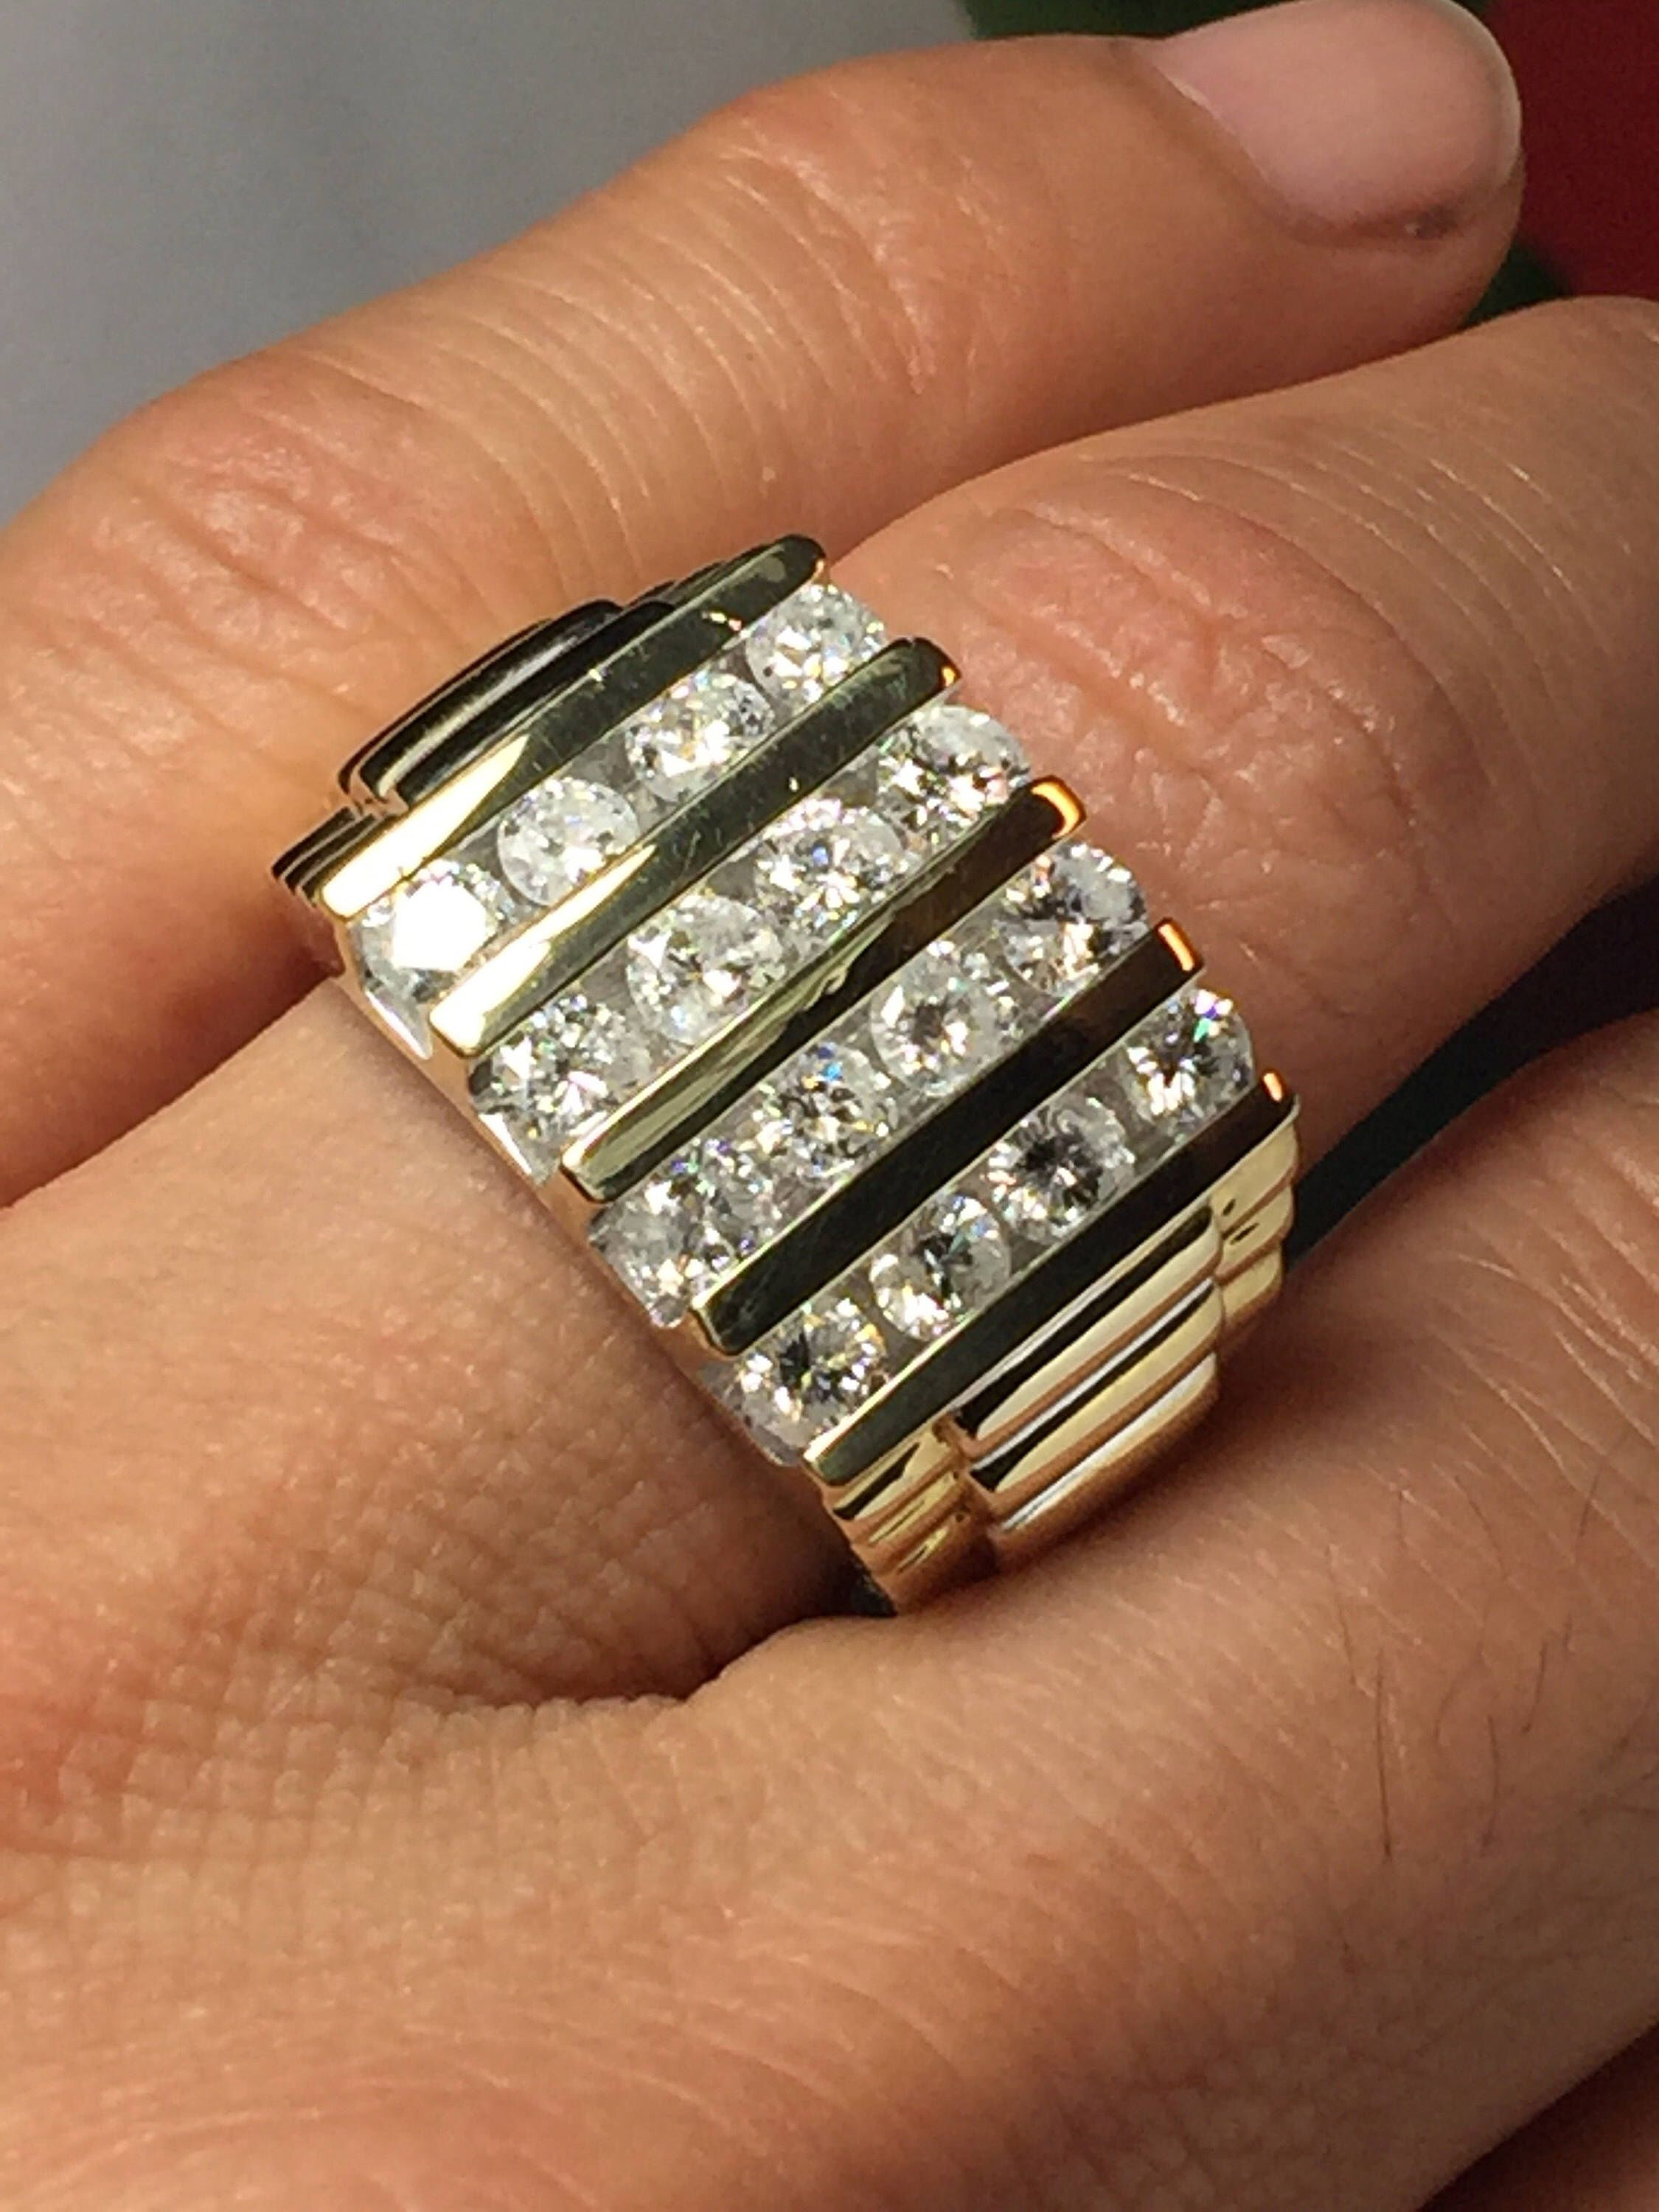 Great Beautiful And very large mens Rolex Design Ring a Classic and timeless ring This ring offers Natural Diamonds each Diamond ctw making the total ctw